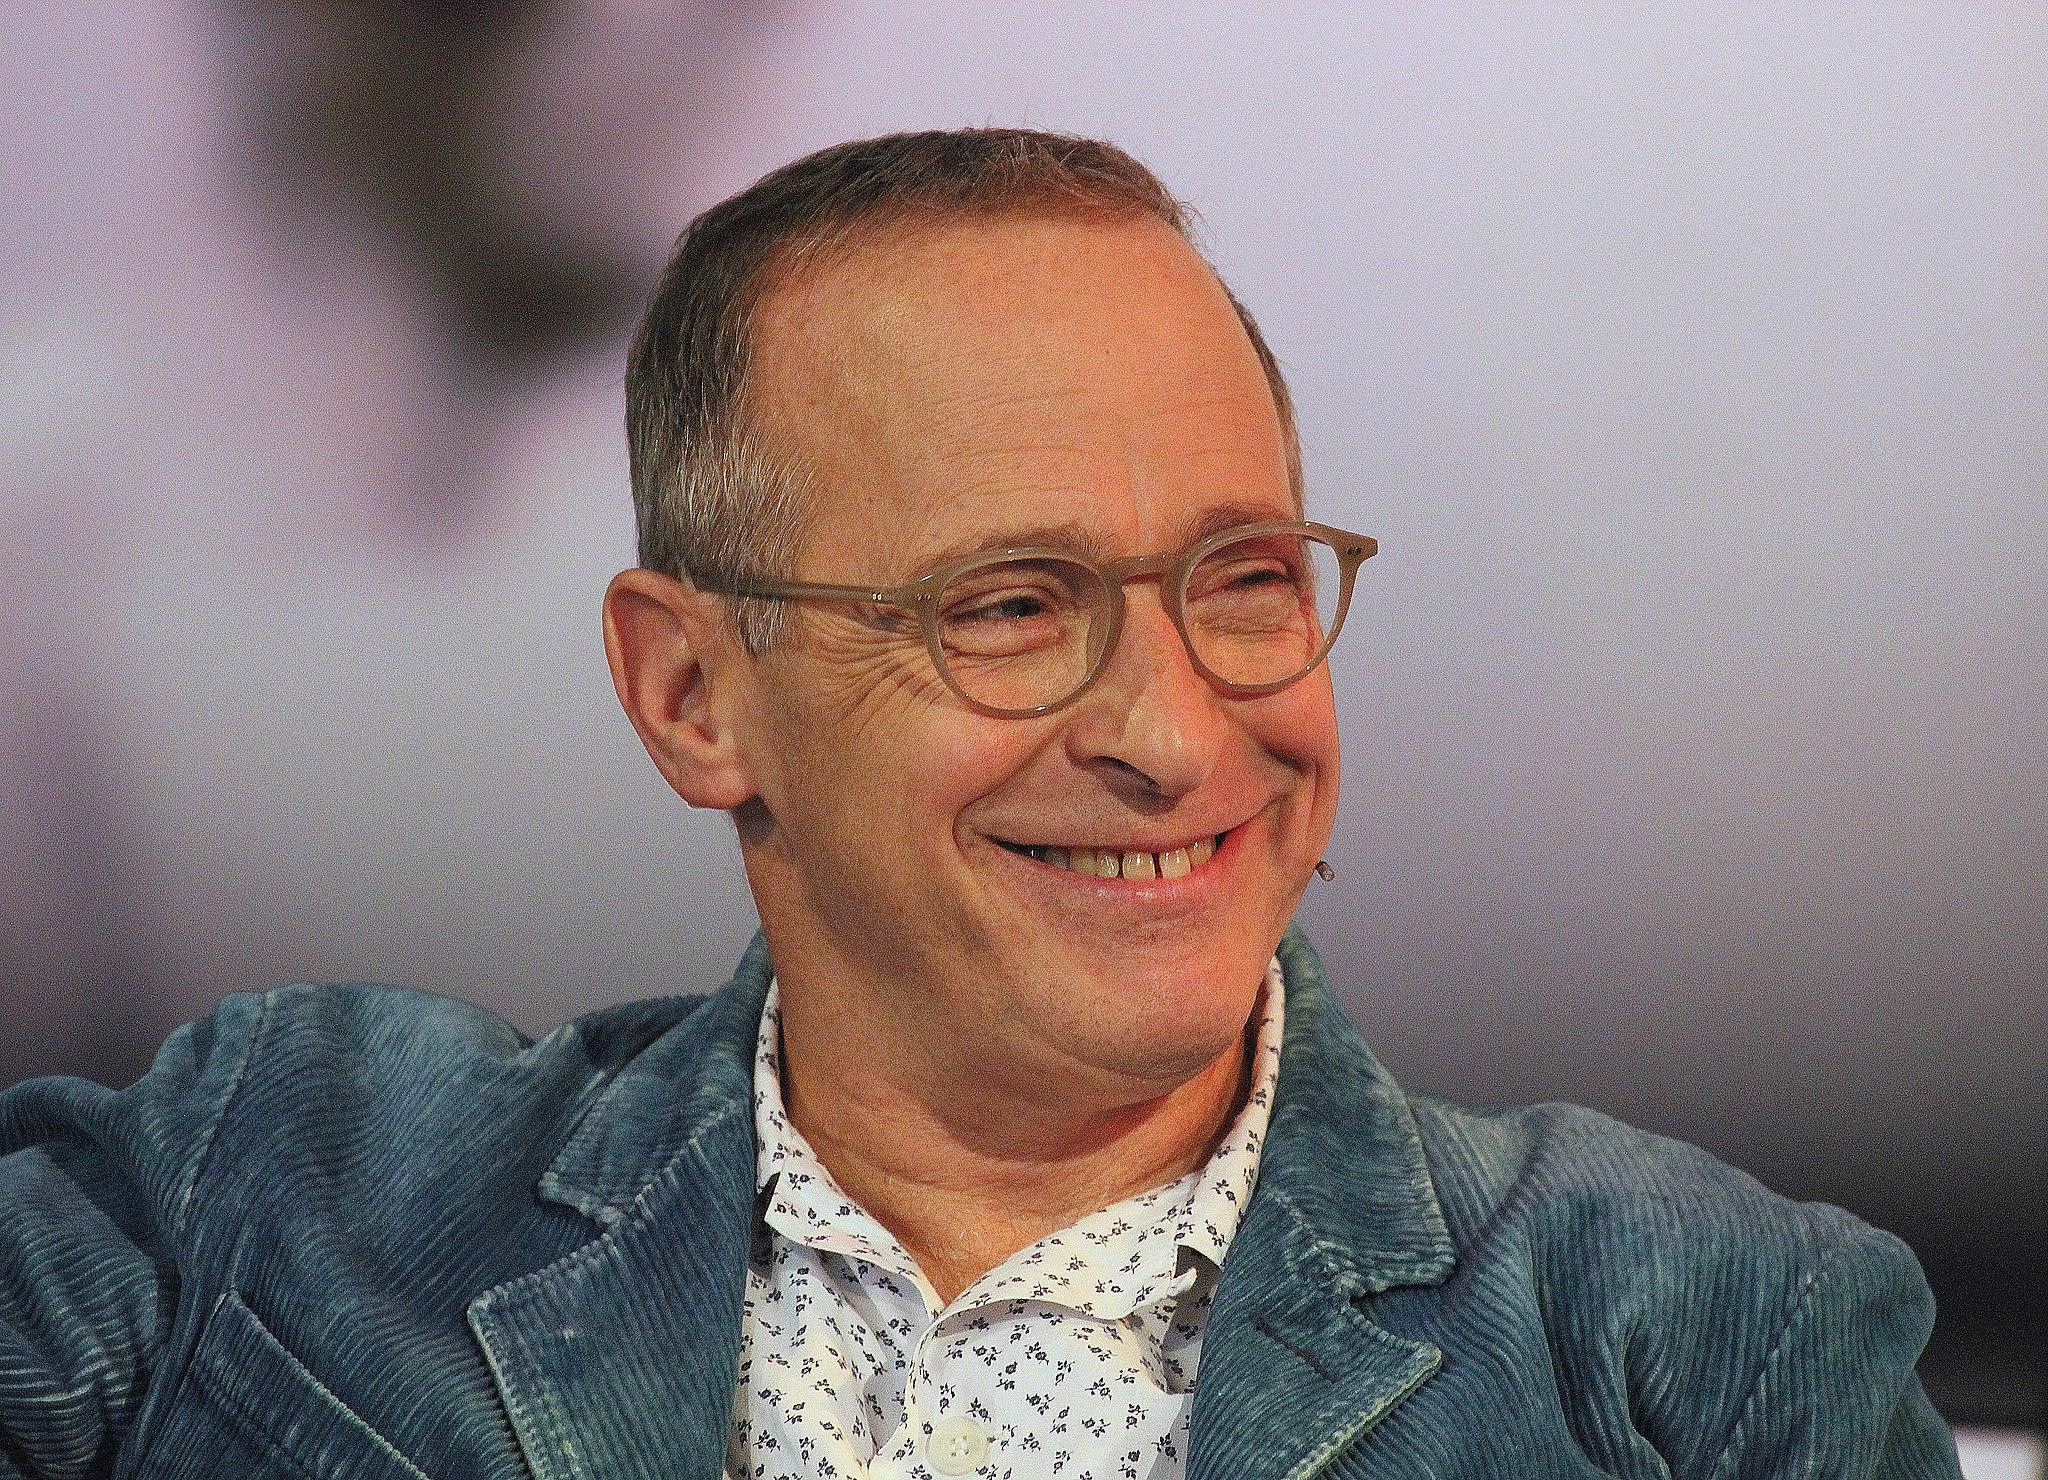 Best David Sedaris Books for Making Yourself Laugh and Humorous